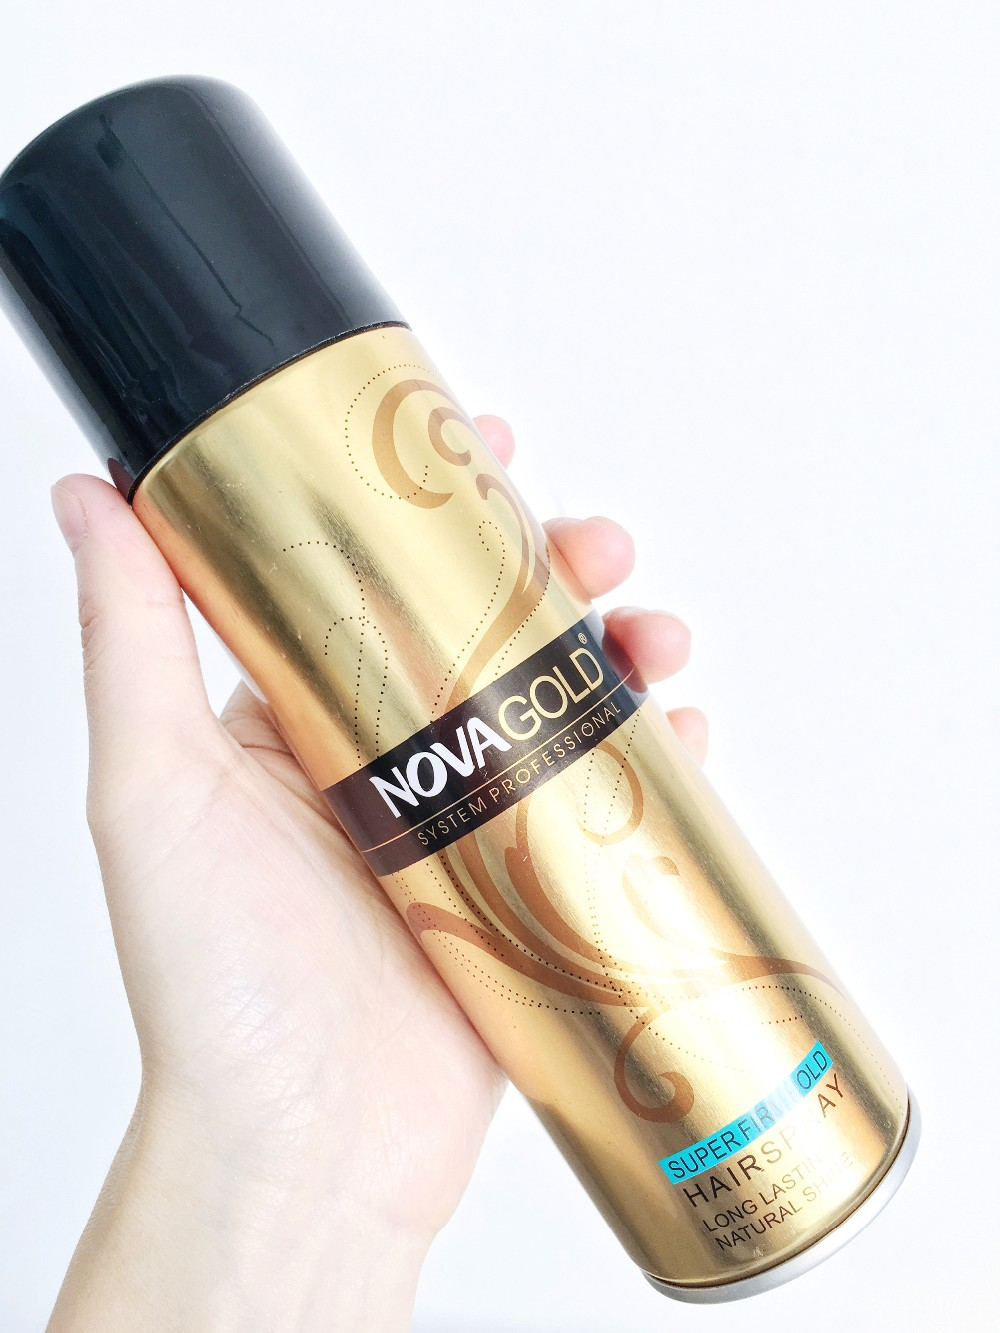 200ml top quality NOVA GOLD fiber lock mist hair spray